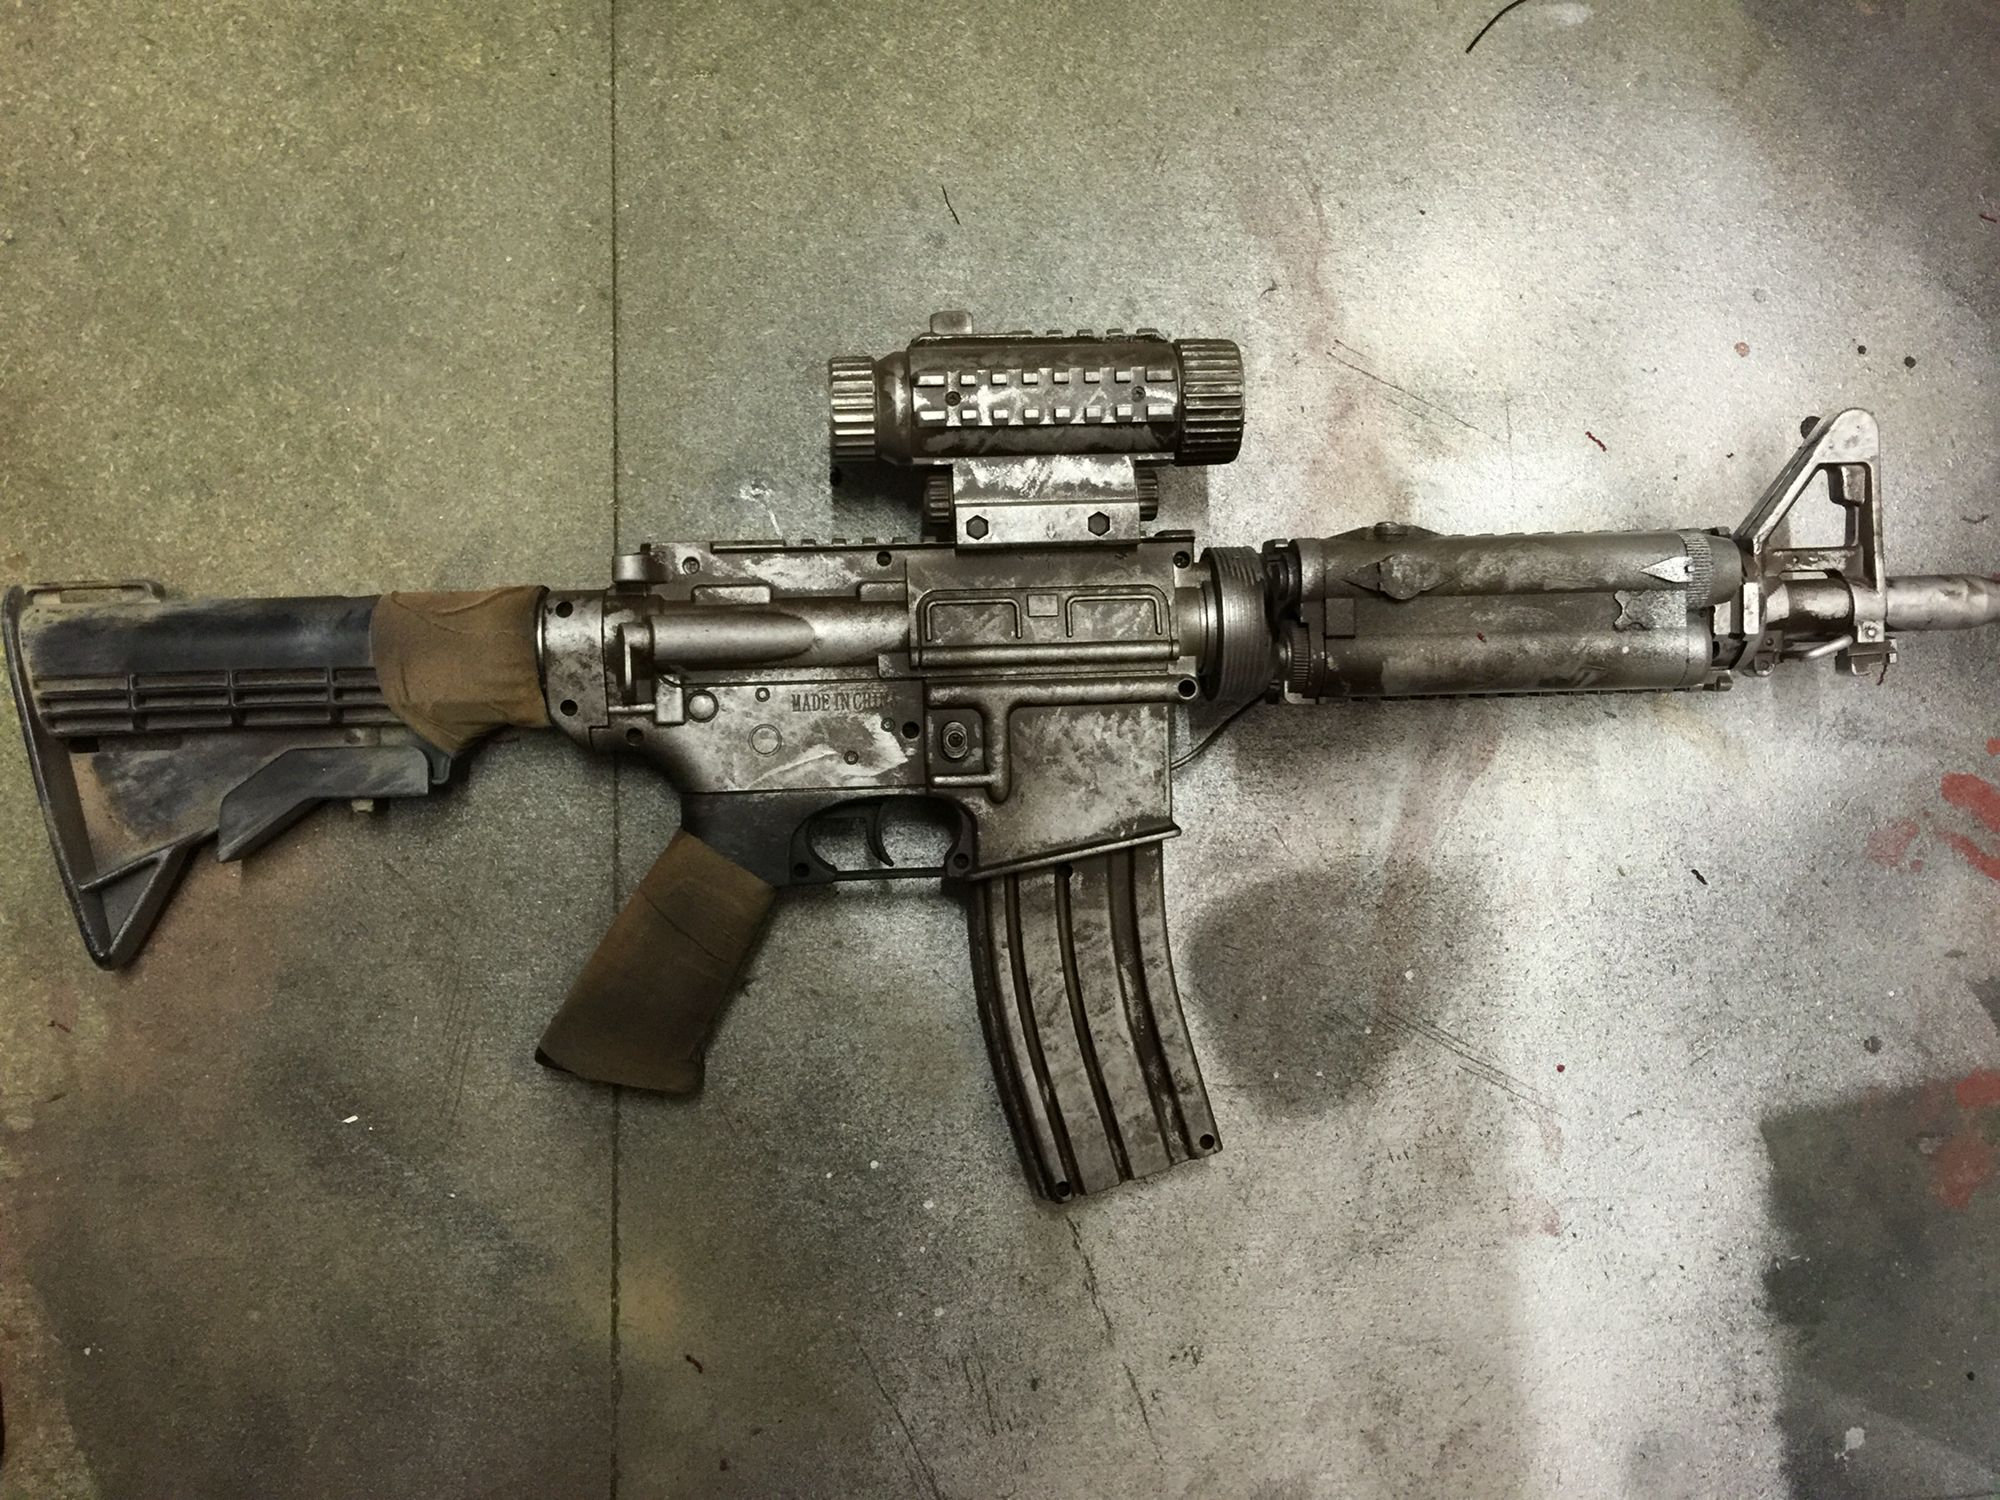 Post Apocalyptic M4 Rifle Paint Job By Dust Monkey